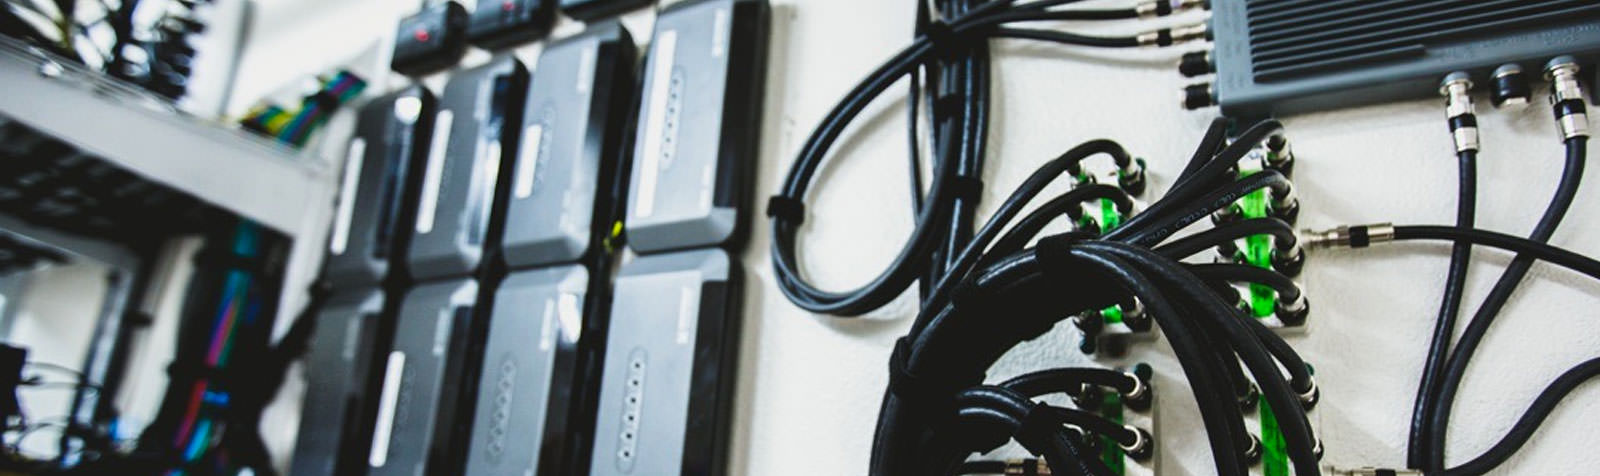 Be More Efficient at Work with a Custom Network Cabling System